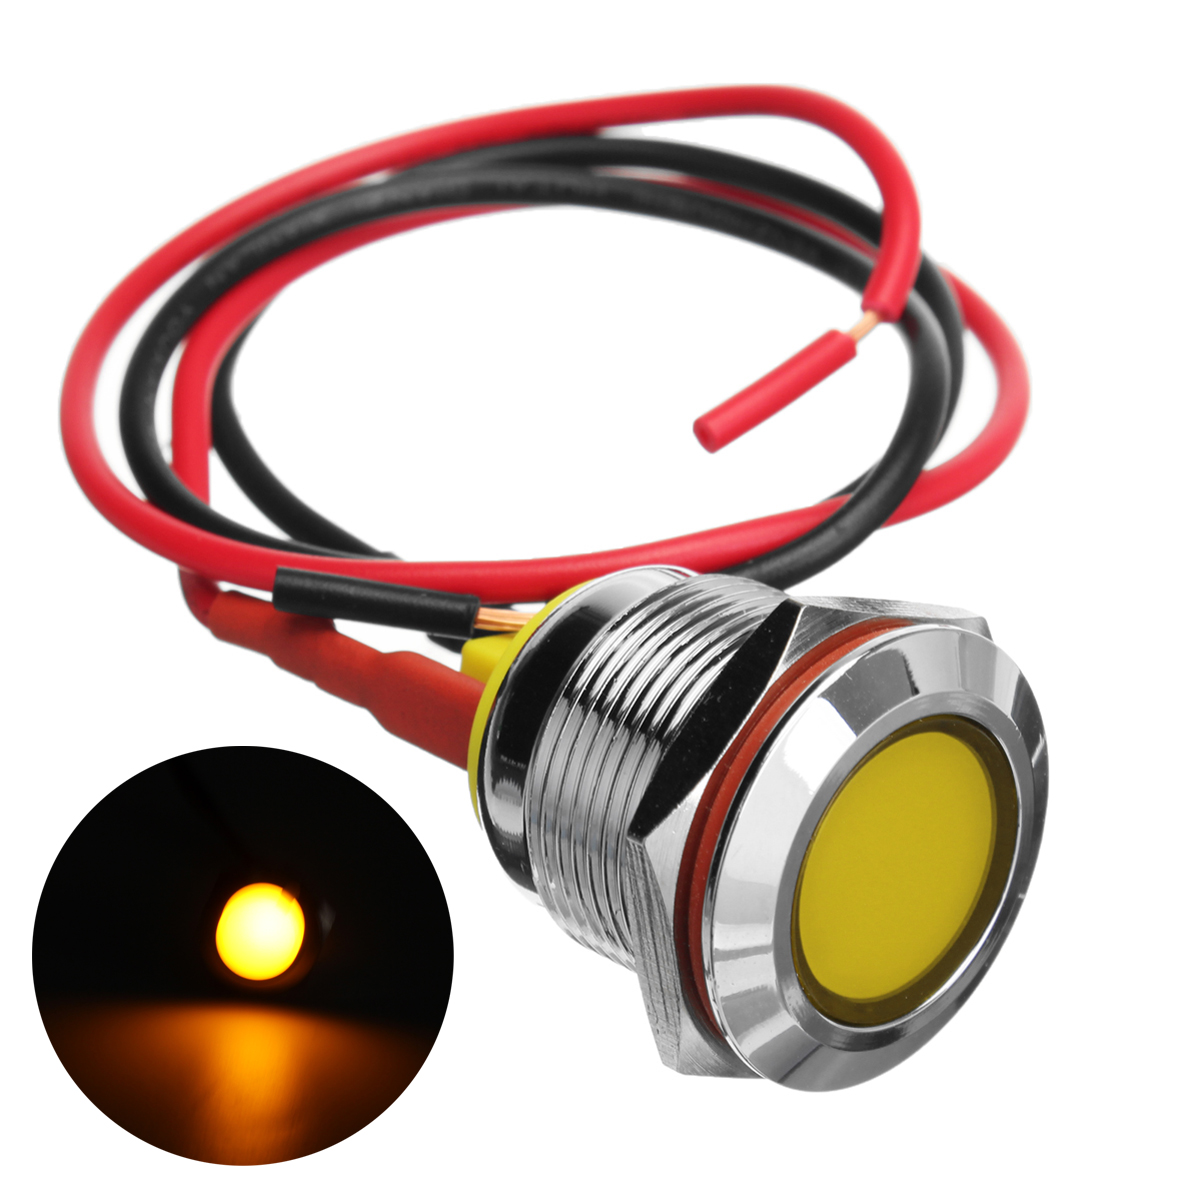 New 1pc Dc 6v 19mm Ip67 Boat Light Waterproof Underwater Led Light Yellow/red/blue/white Swimming Pool Pond Quality And Quantity Assured Led Underwater Lights